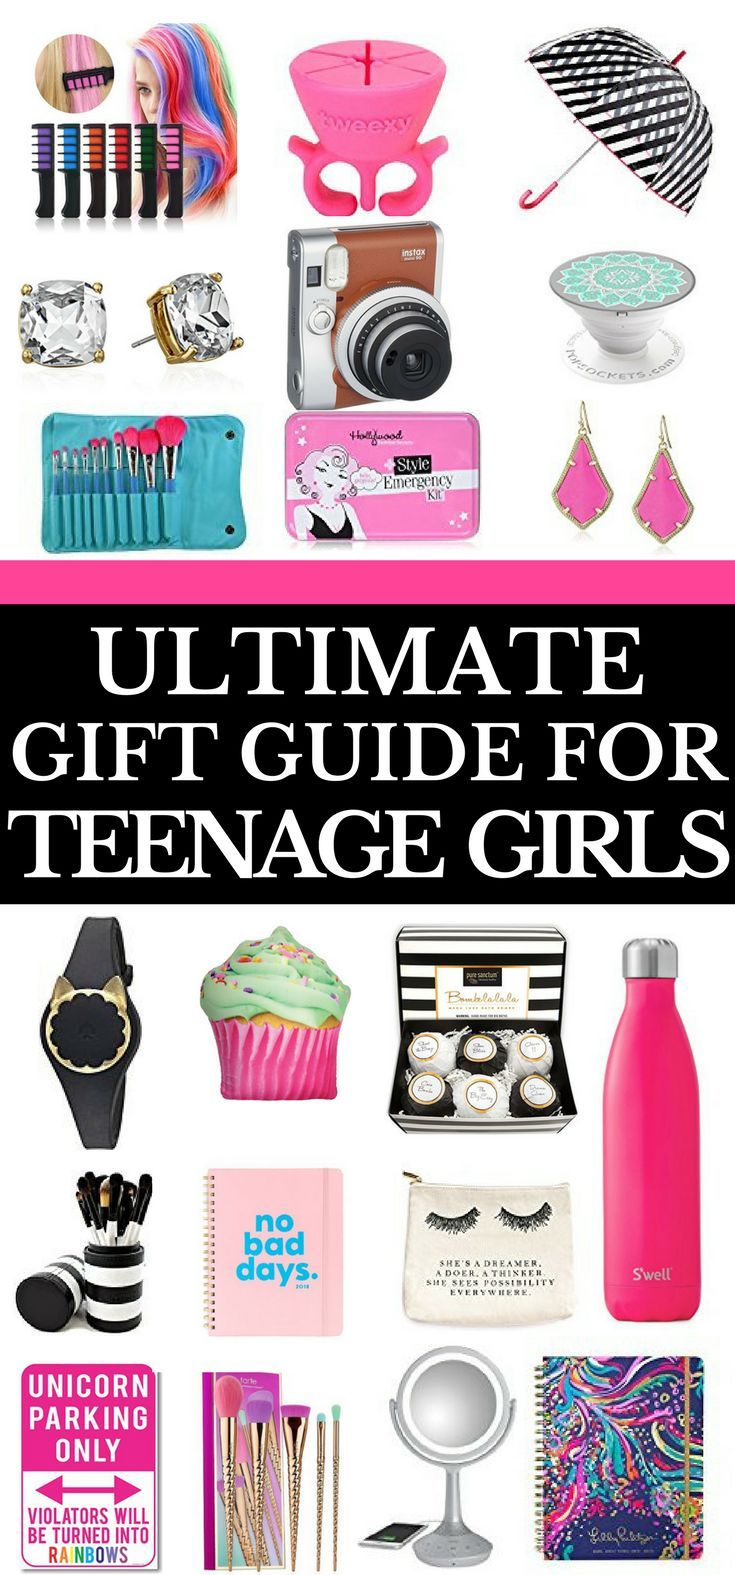 gifts for teens if youre looking for gifts for teen girls then you need the ultimate gift guide for teenage girls over 127 popular gift